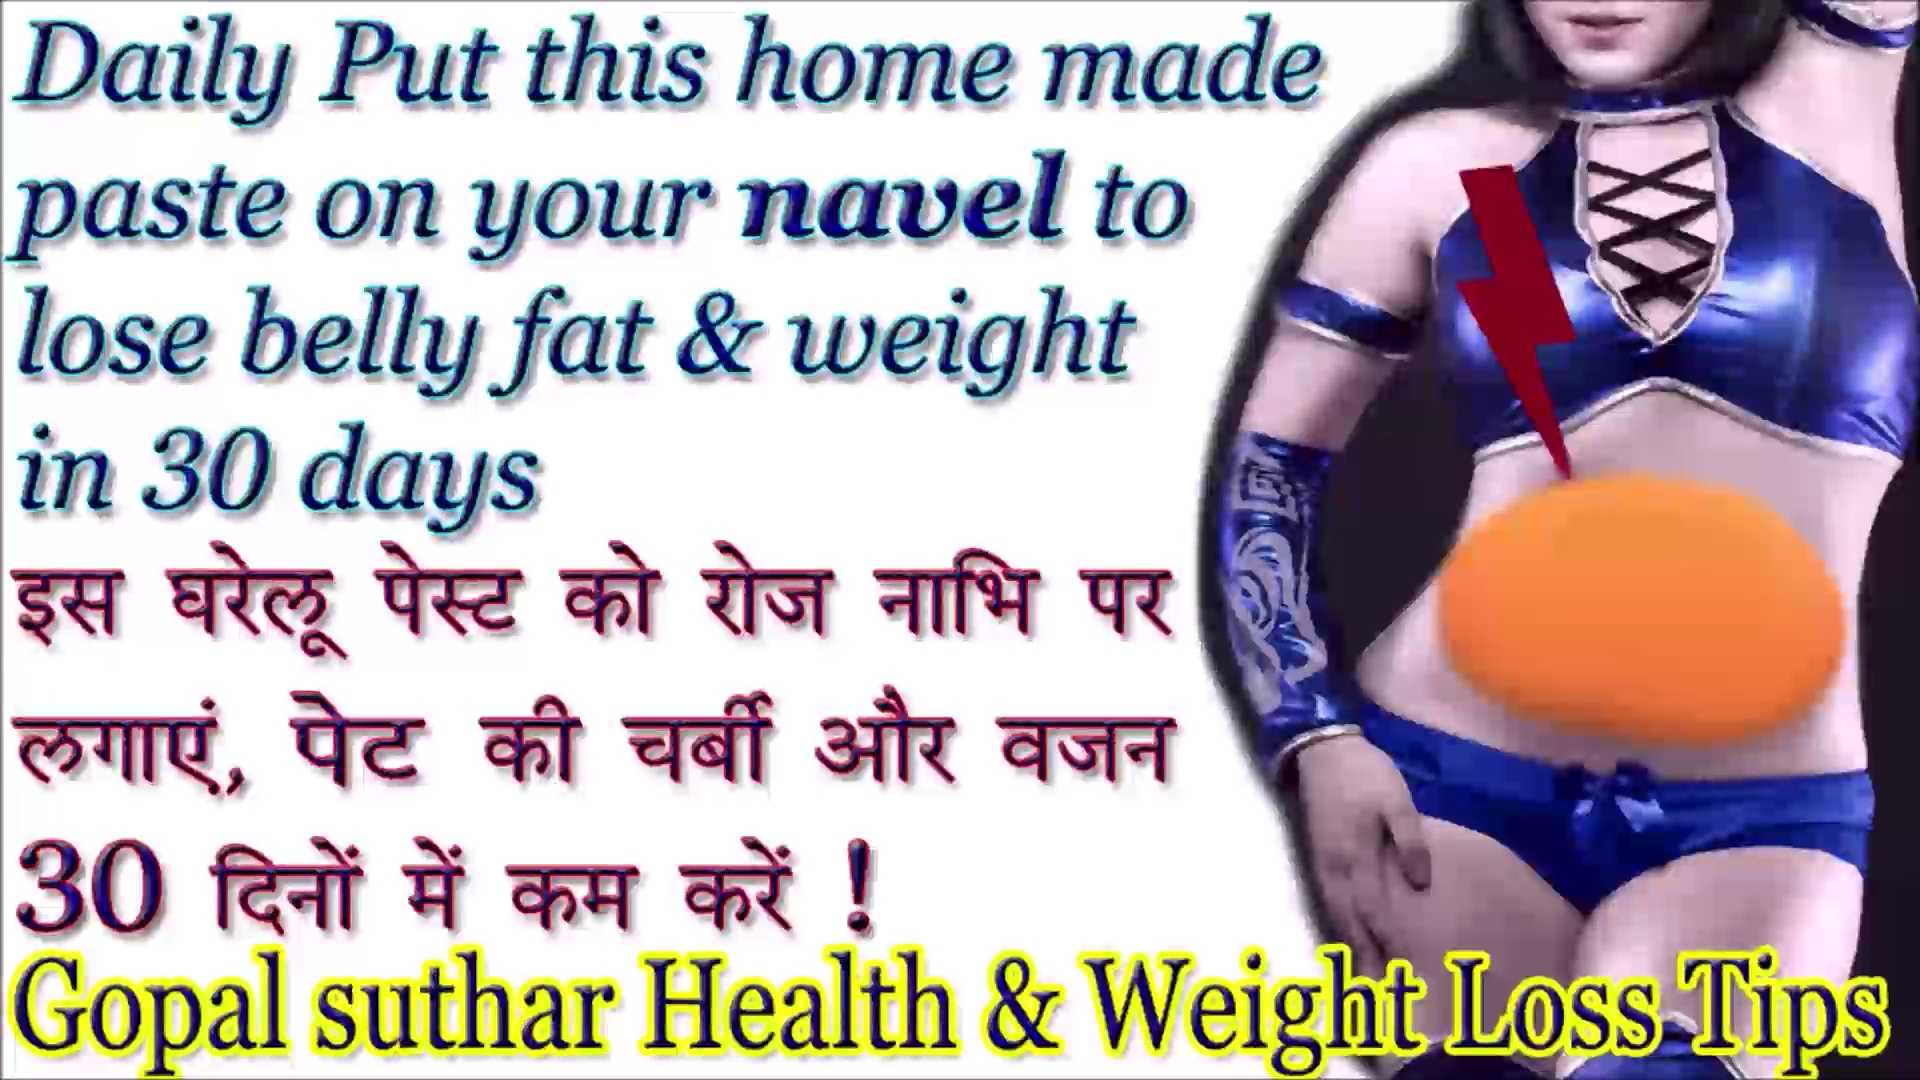 Put Homemade Ayurveda Paste Daily on your Navel to Lose Belly fat & Weight in 30 Days | 30 days Weight loss challenge Tips In Hindi.